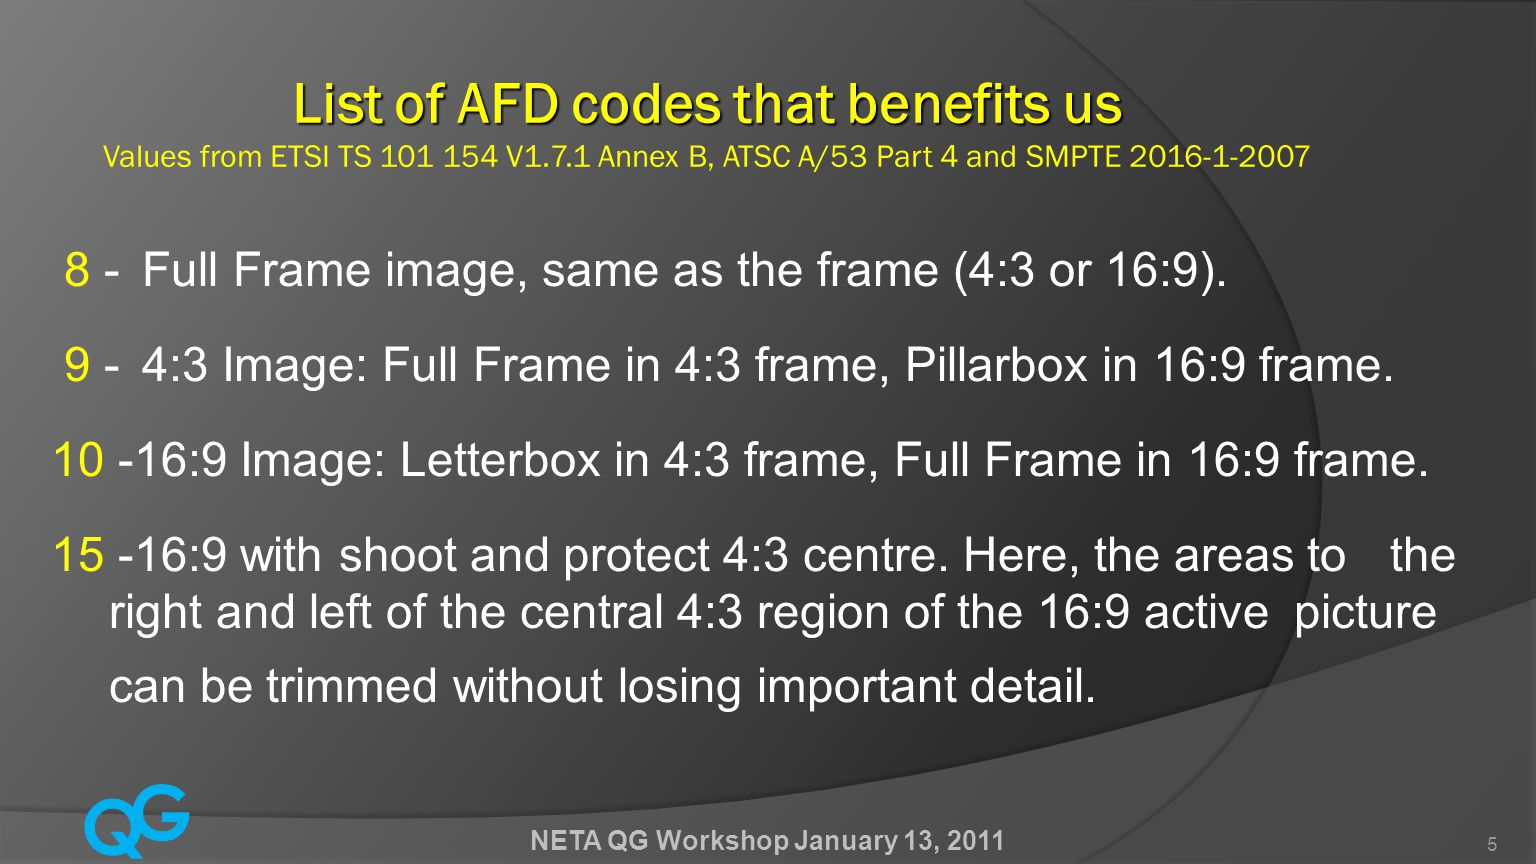 Q G NETA QG Workshop January 13, 2011 5 List of AFD codes that benefits us List of AFD codes that benefits us Values from ETSI TS 101 154 V1.7.1 Annex B, ATSC A/53 Part 4 and SMPTE 2016-1-2007 8 - Full Frame image, same as the frame (4:3 or 16:9).